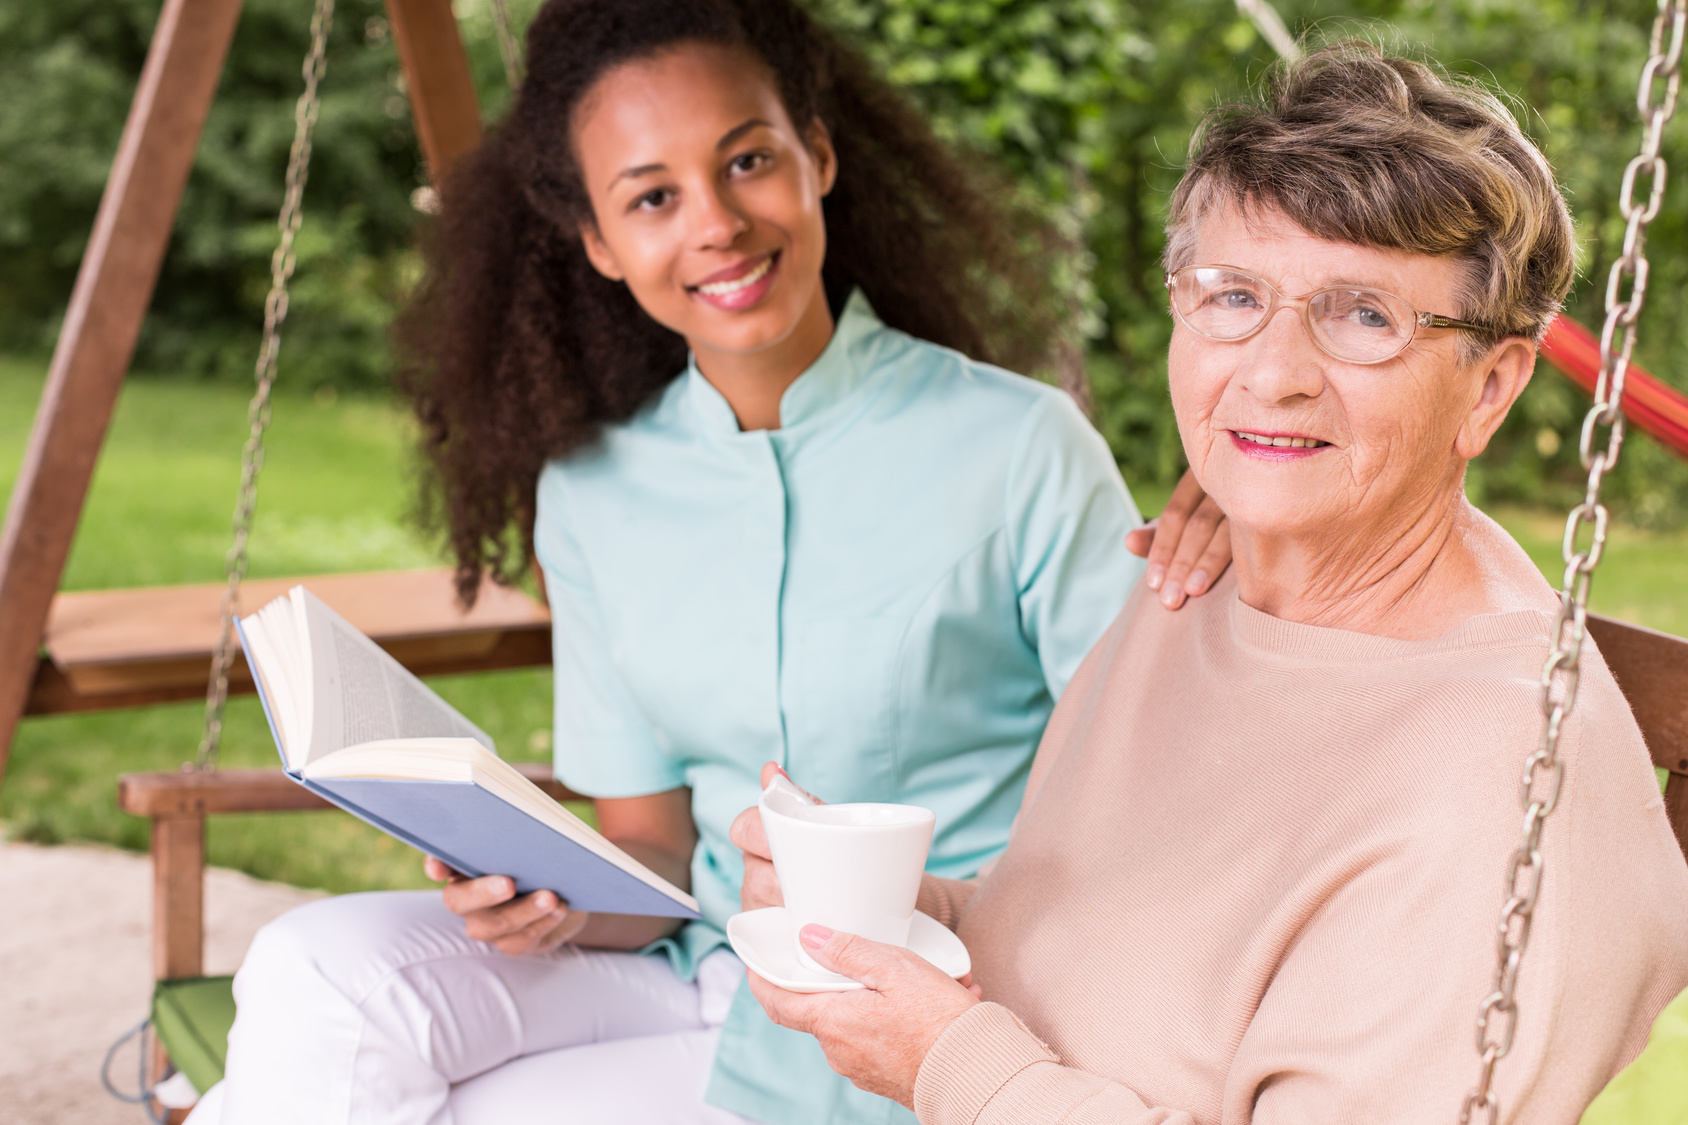 Caregiver-with-Elderly-Woman-Reading